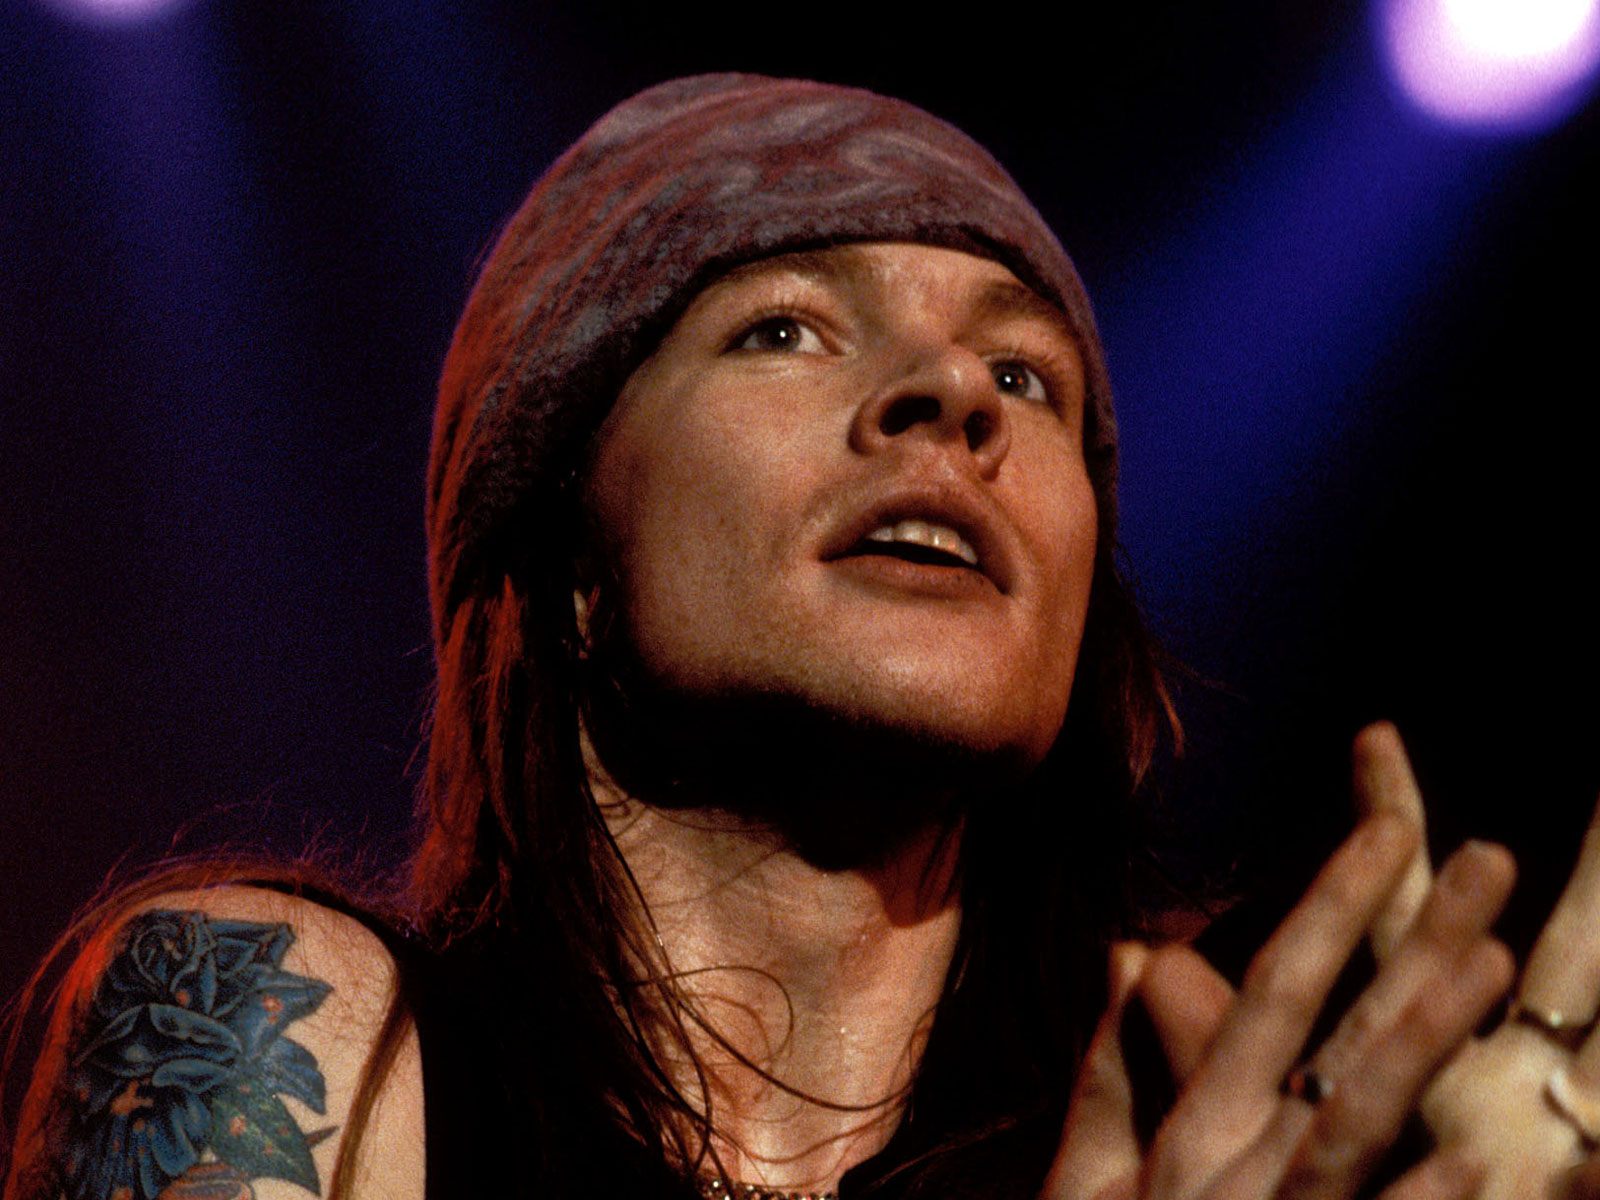 HD wallpapers axl rose iphone wallpaper